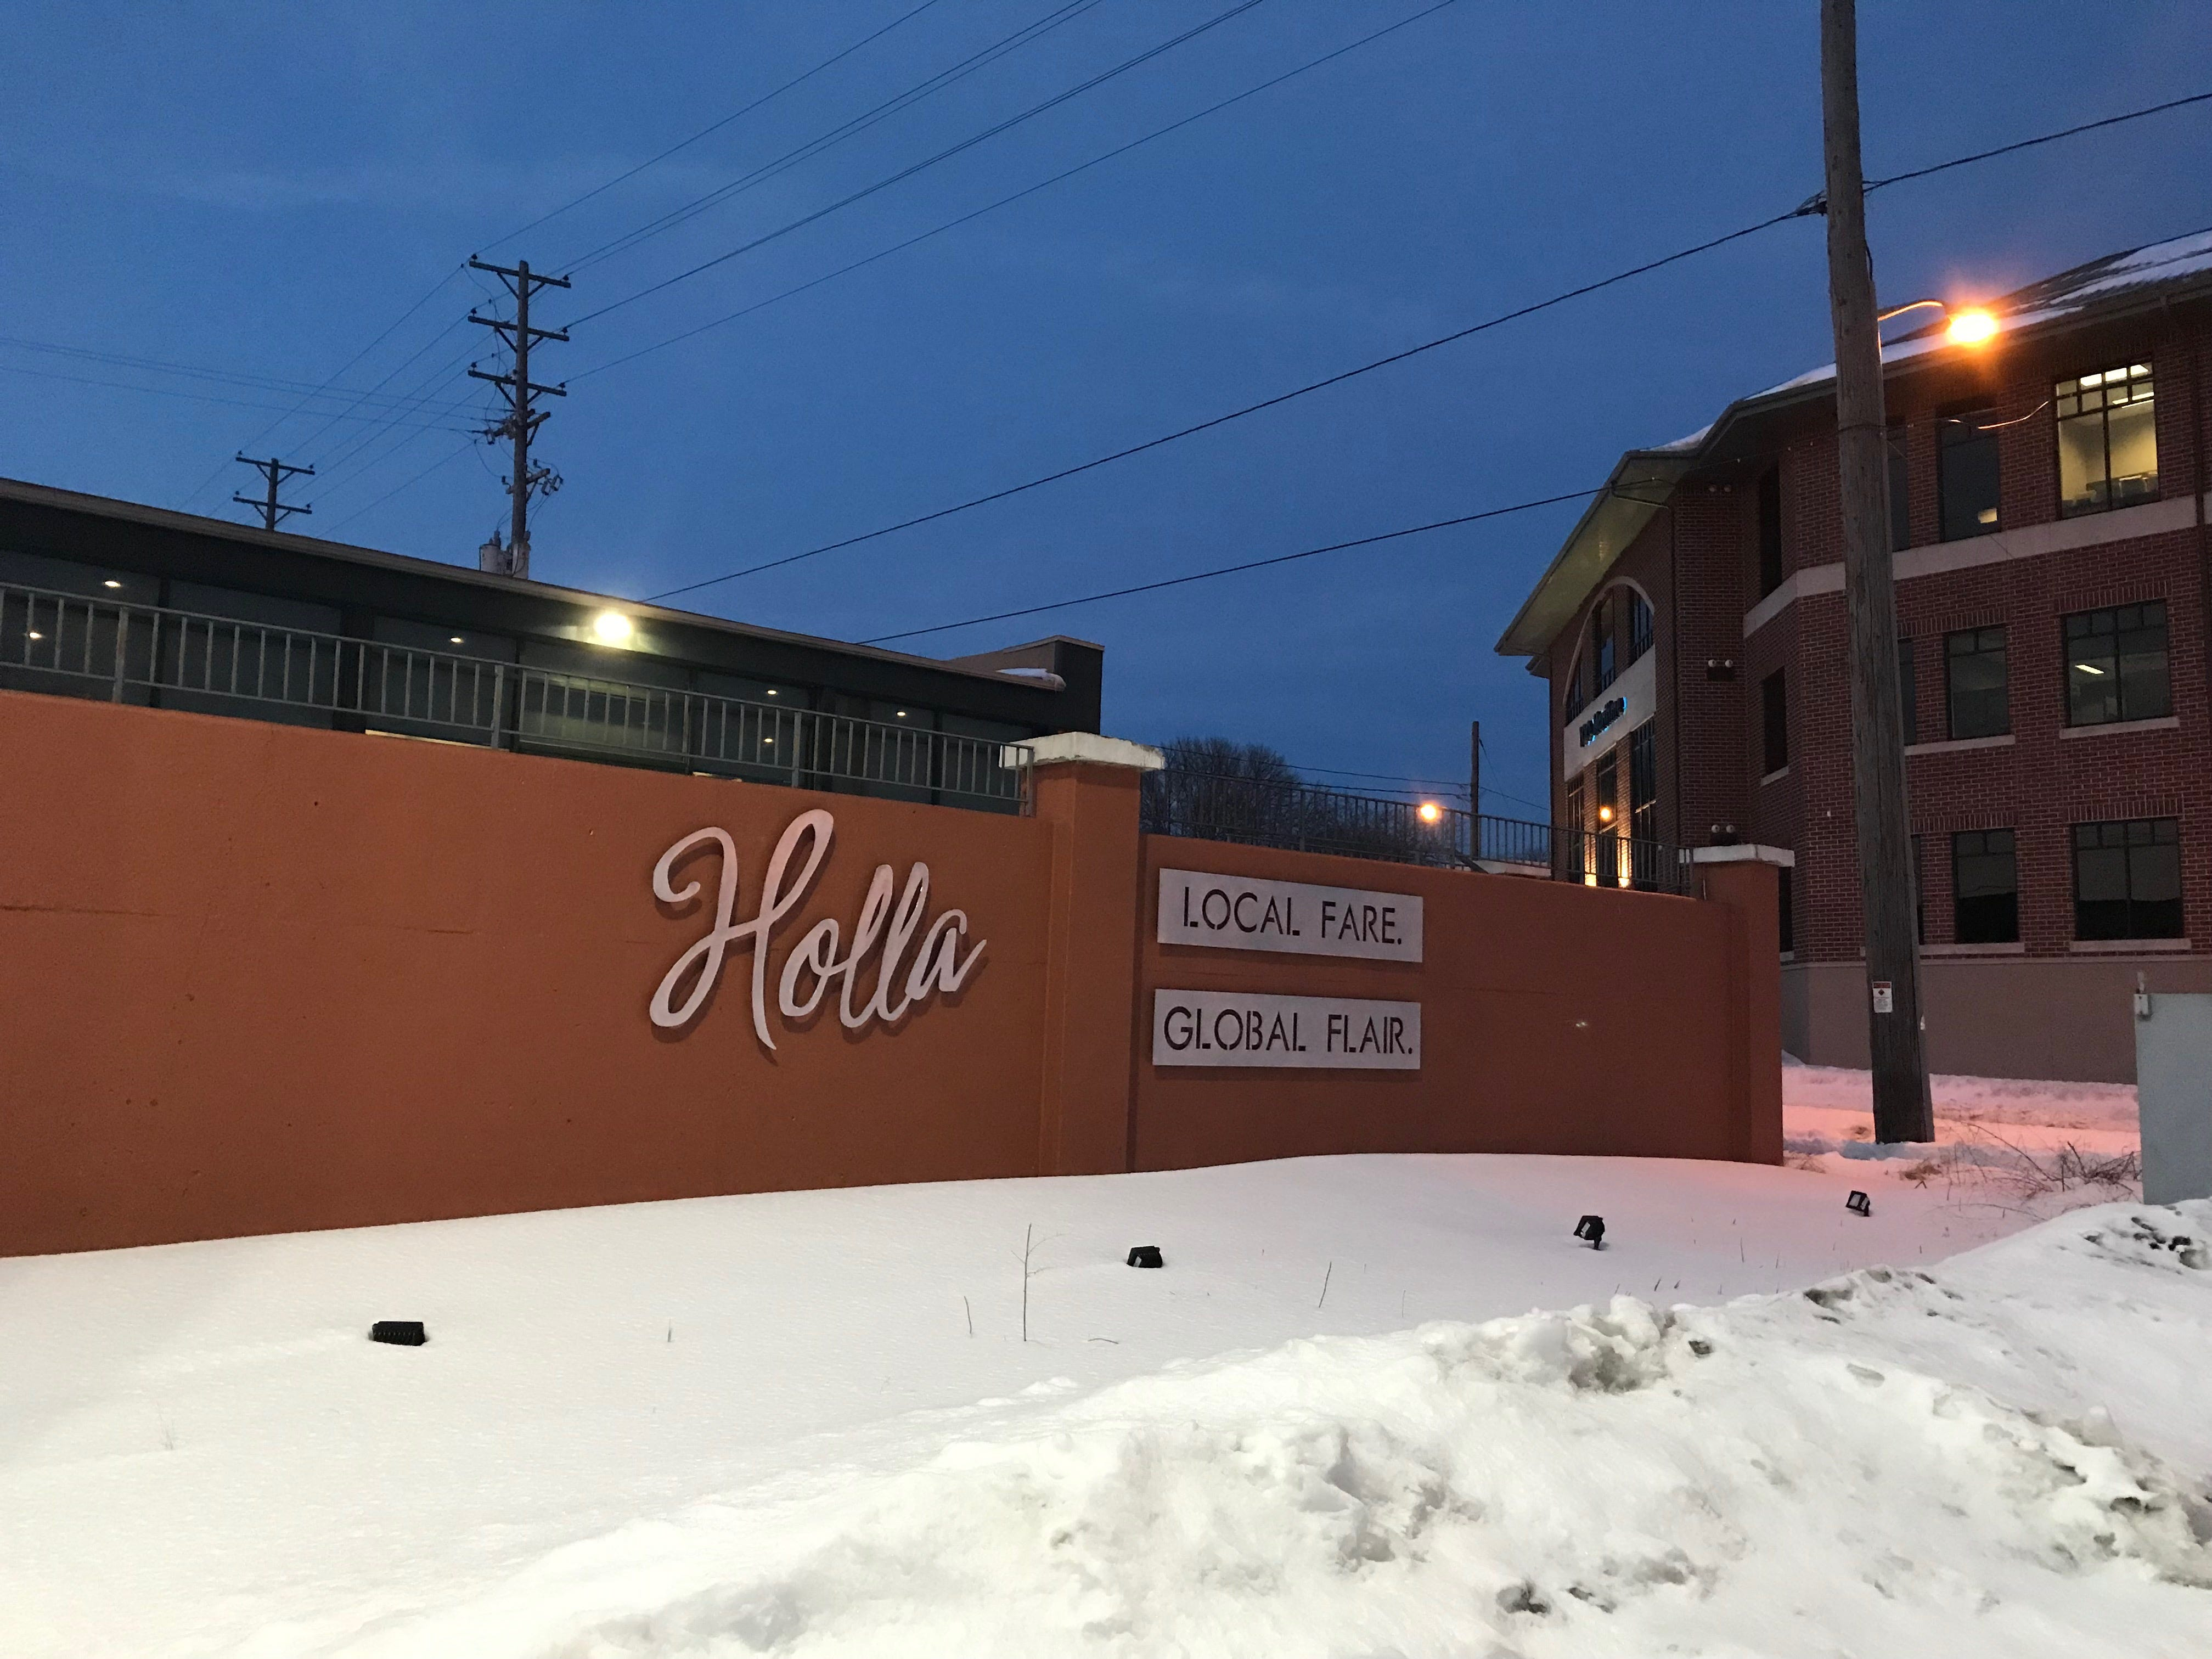 Holla is a new farm-to-table restaurant at 603 York St., Manitowoc. This sign can be seen from Maritime Drive.